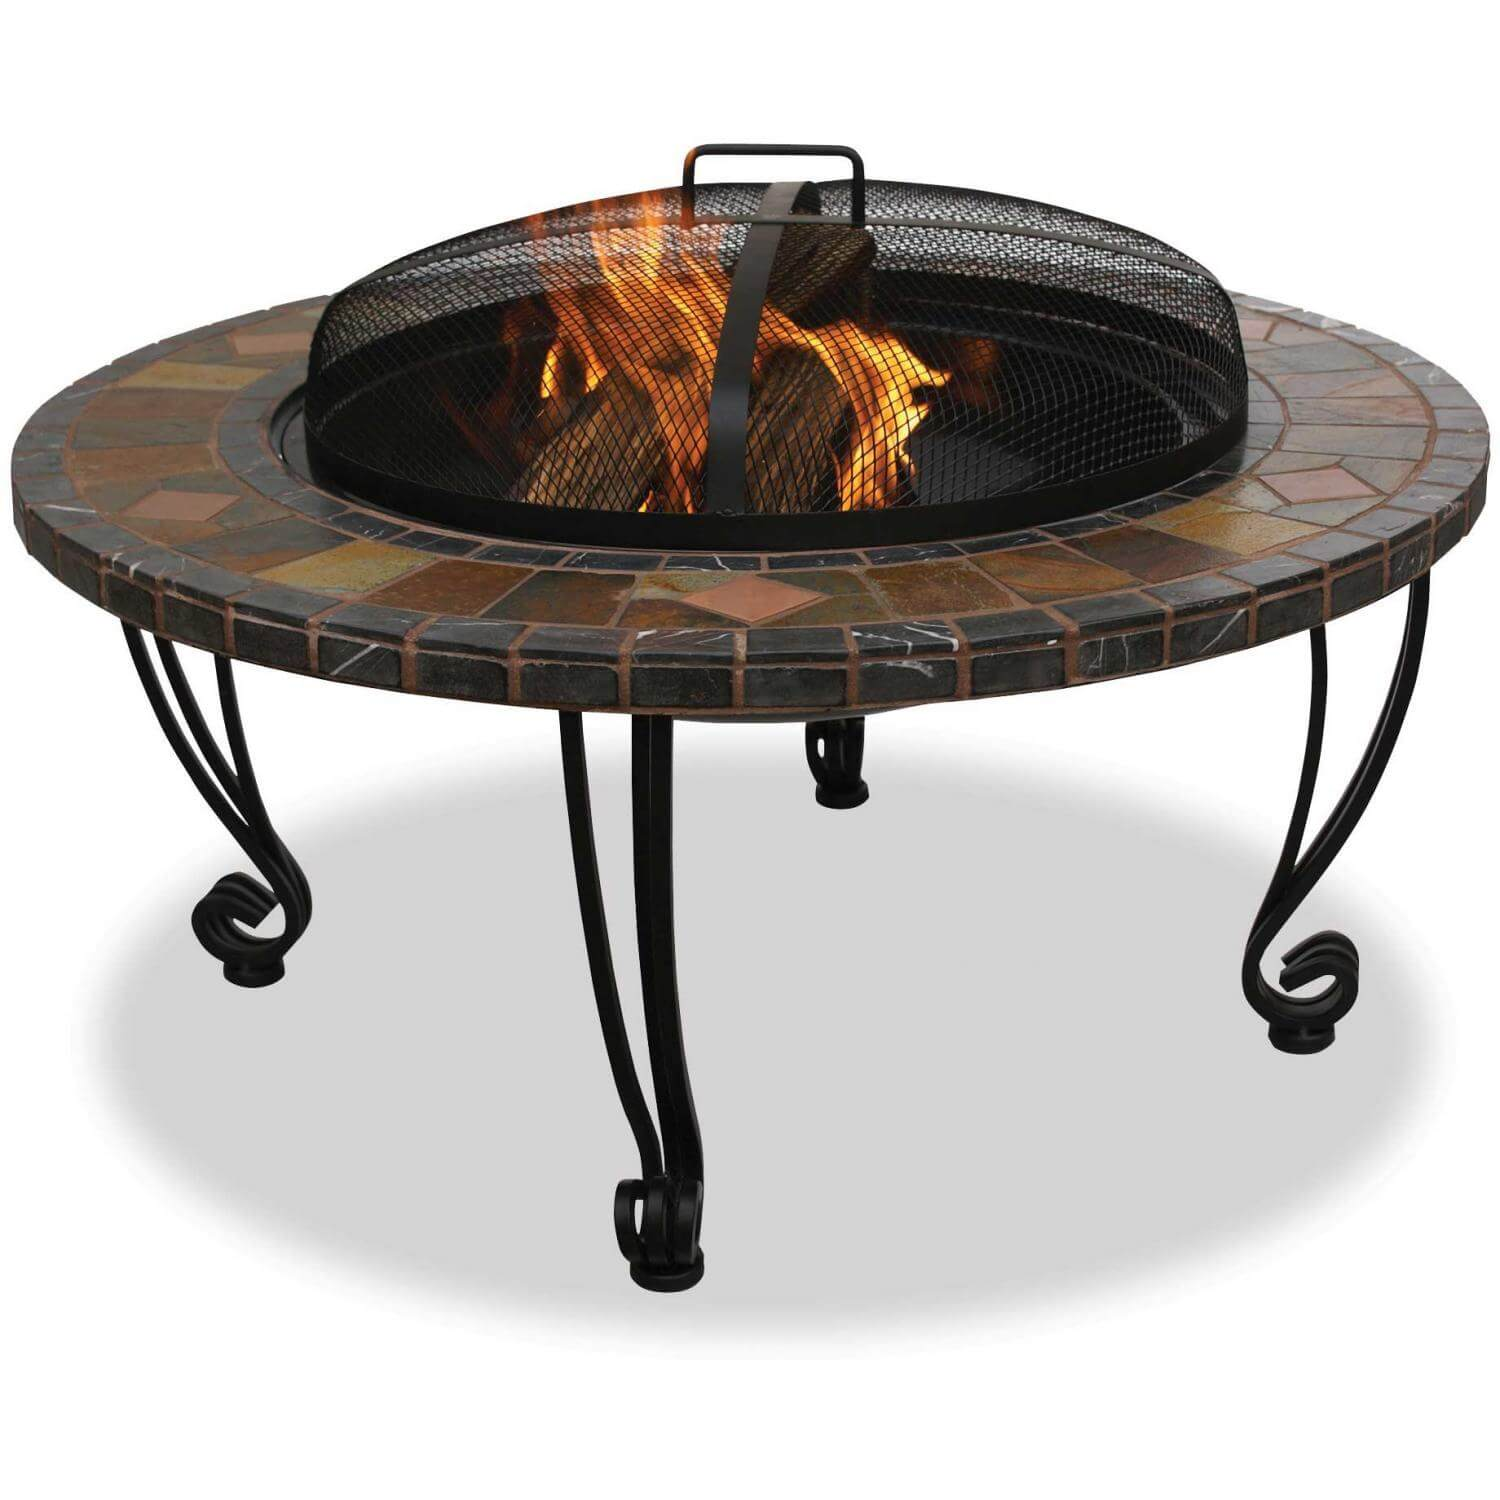 Uniflame Woodburning Fit Pit at Casual Creations